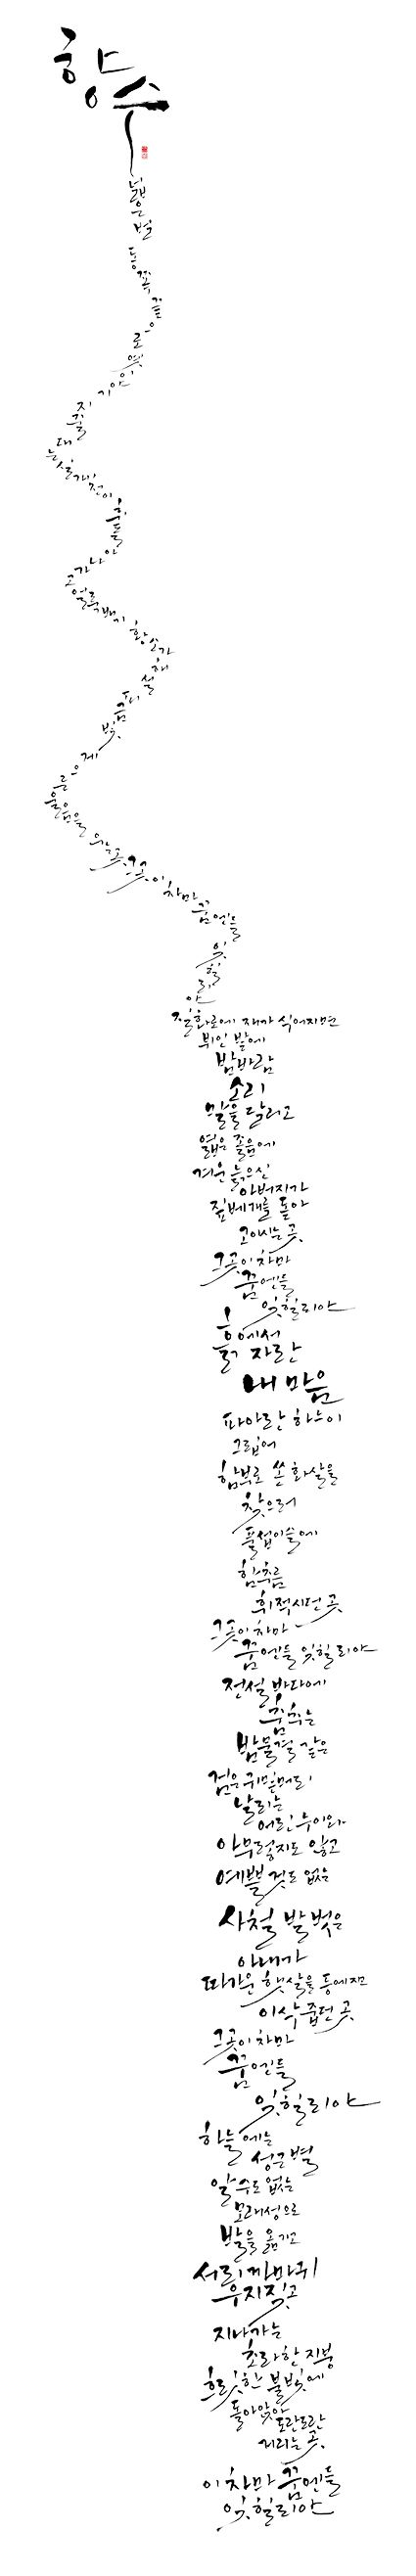 Korean calligraphy 향수 정지용